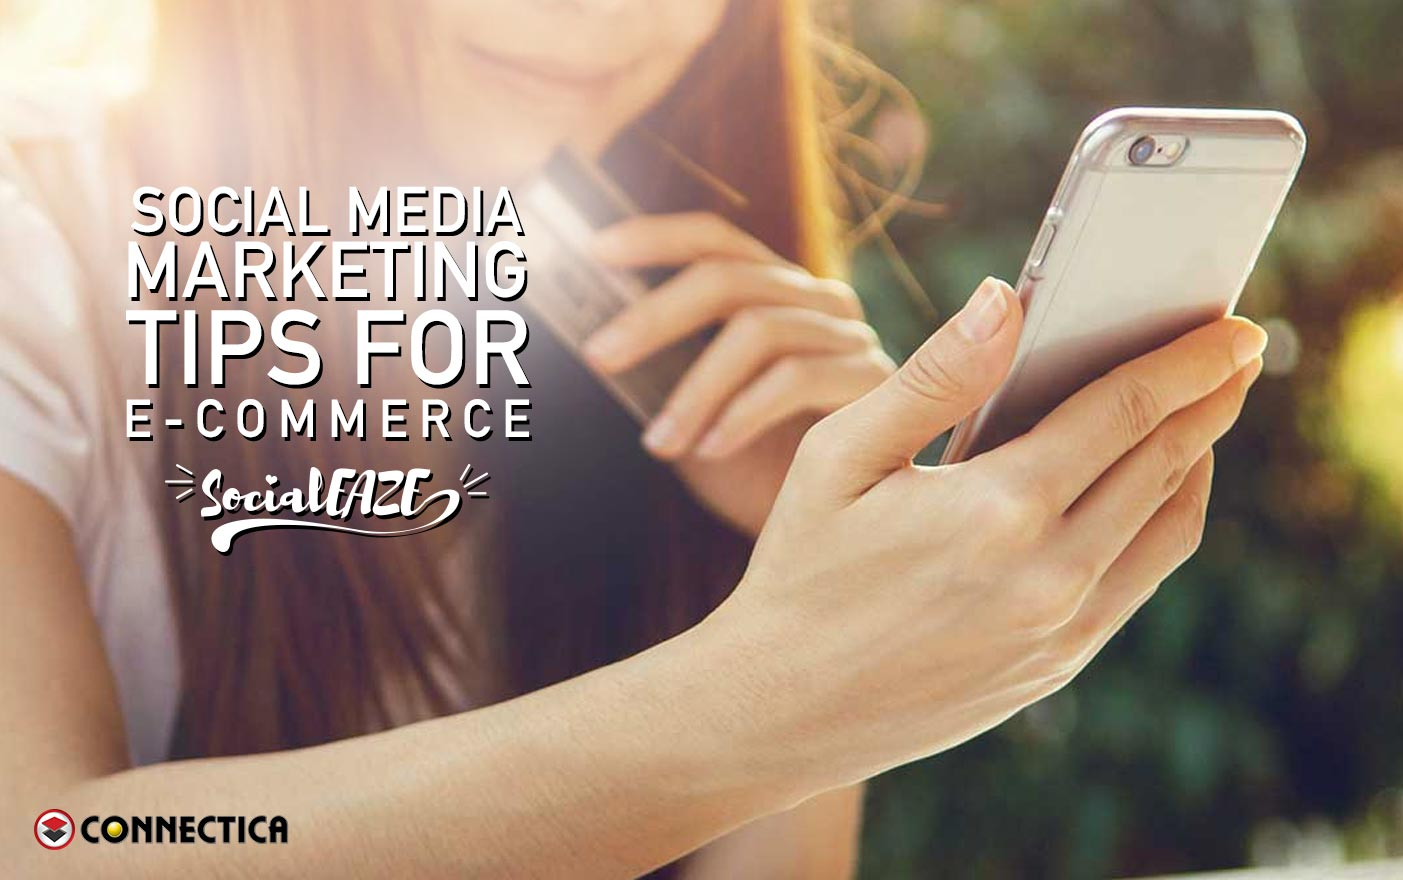 Social Media Marketing Tips For E-Commerce